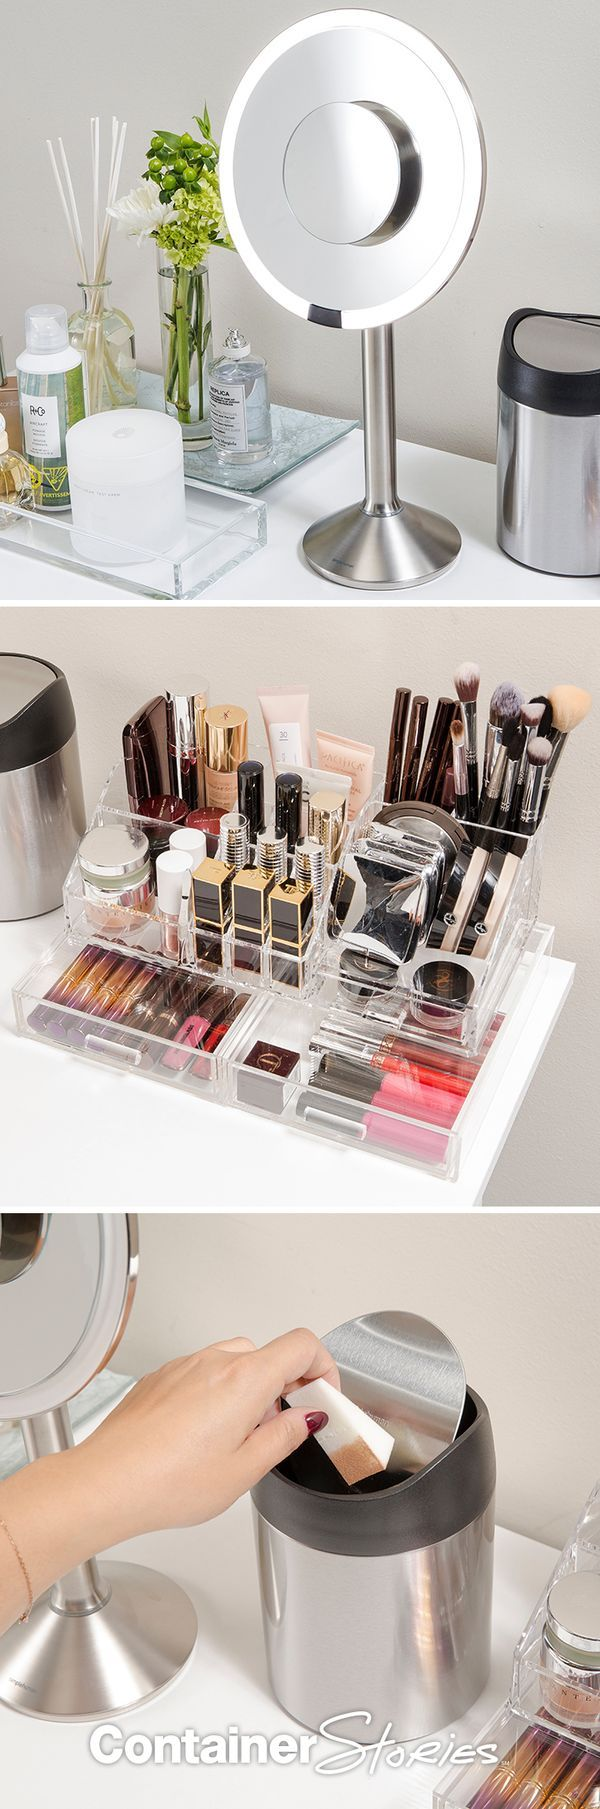 Best 25+ Acrylic makeup organizers ideas on Pinterest | Makeup organization,  Acrylic makeup storage and Makeup storage containers